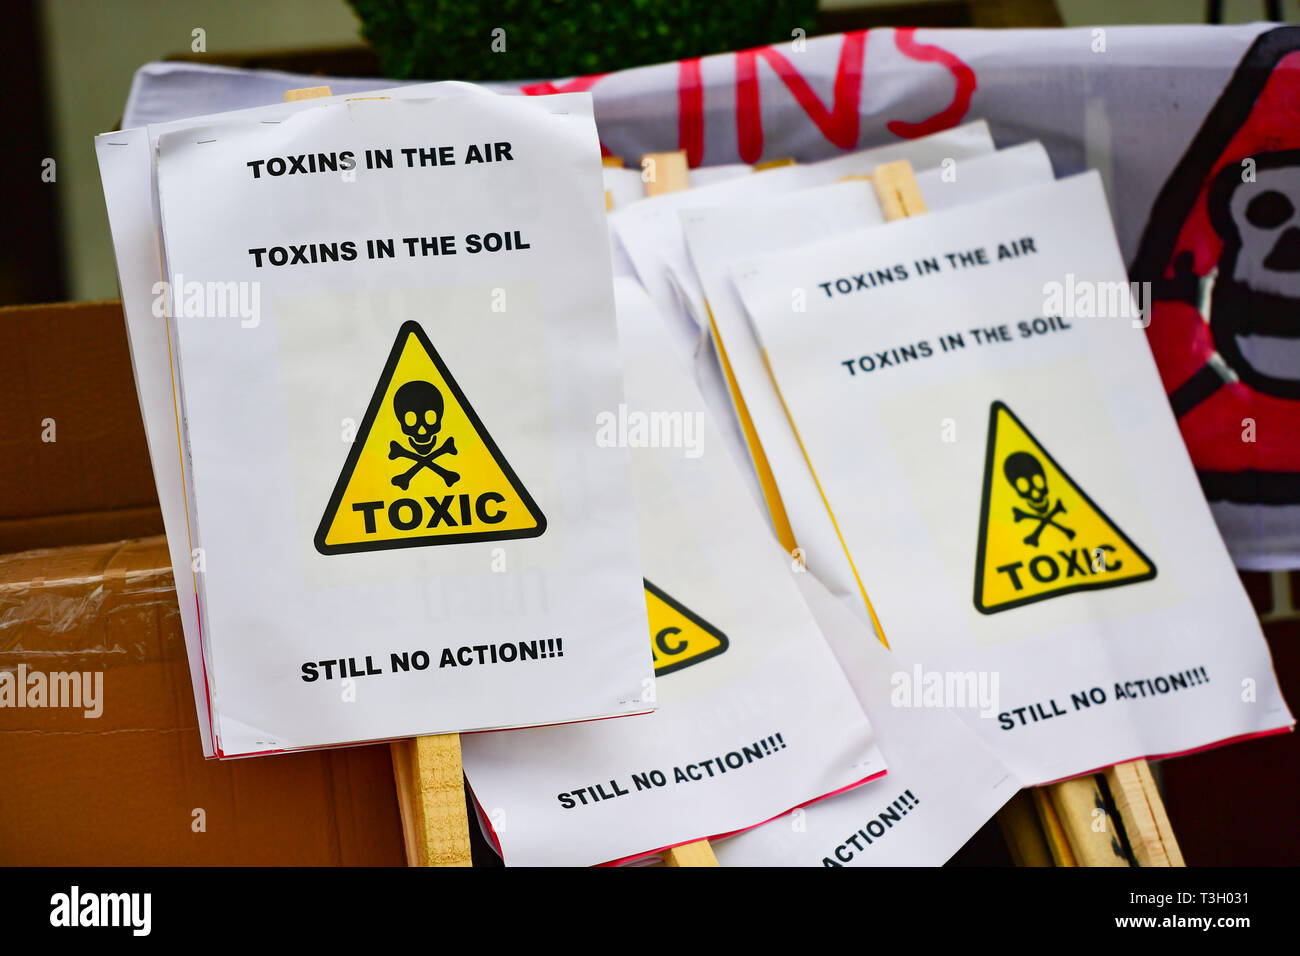 Banners used in west London in a protest accusing authorities of lying after cancer-causing chemicals were found in soil close to Grenfell Tower. Stock Photo